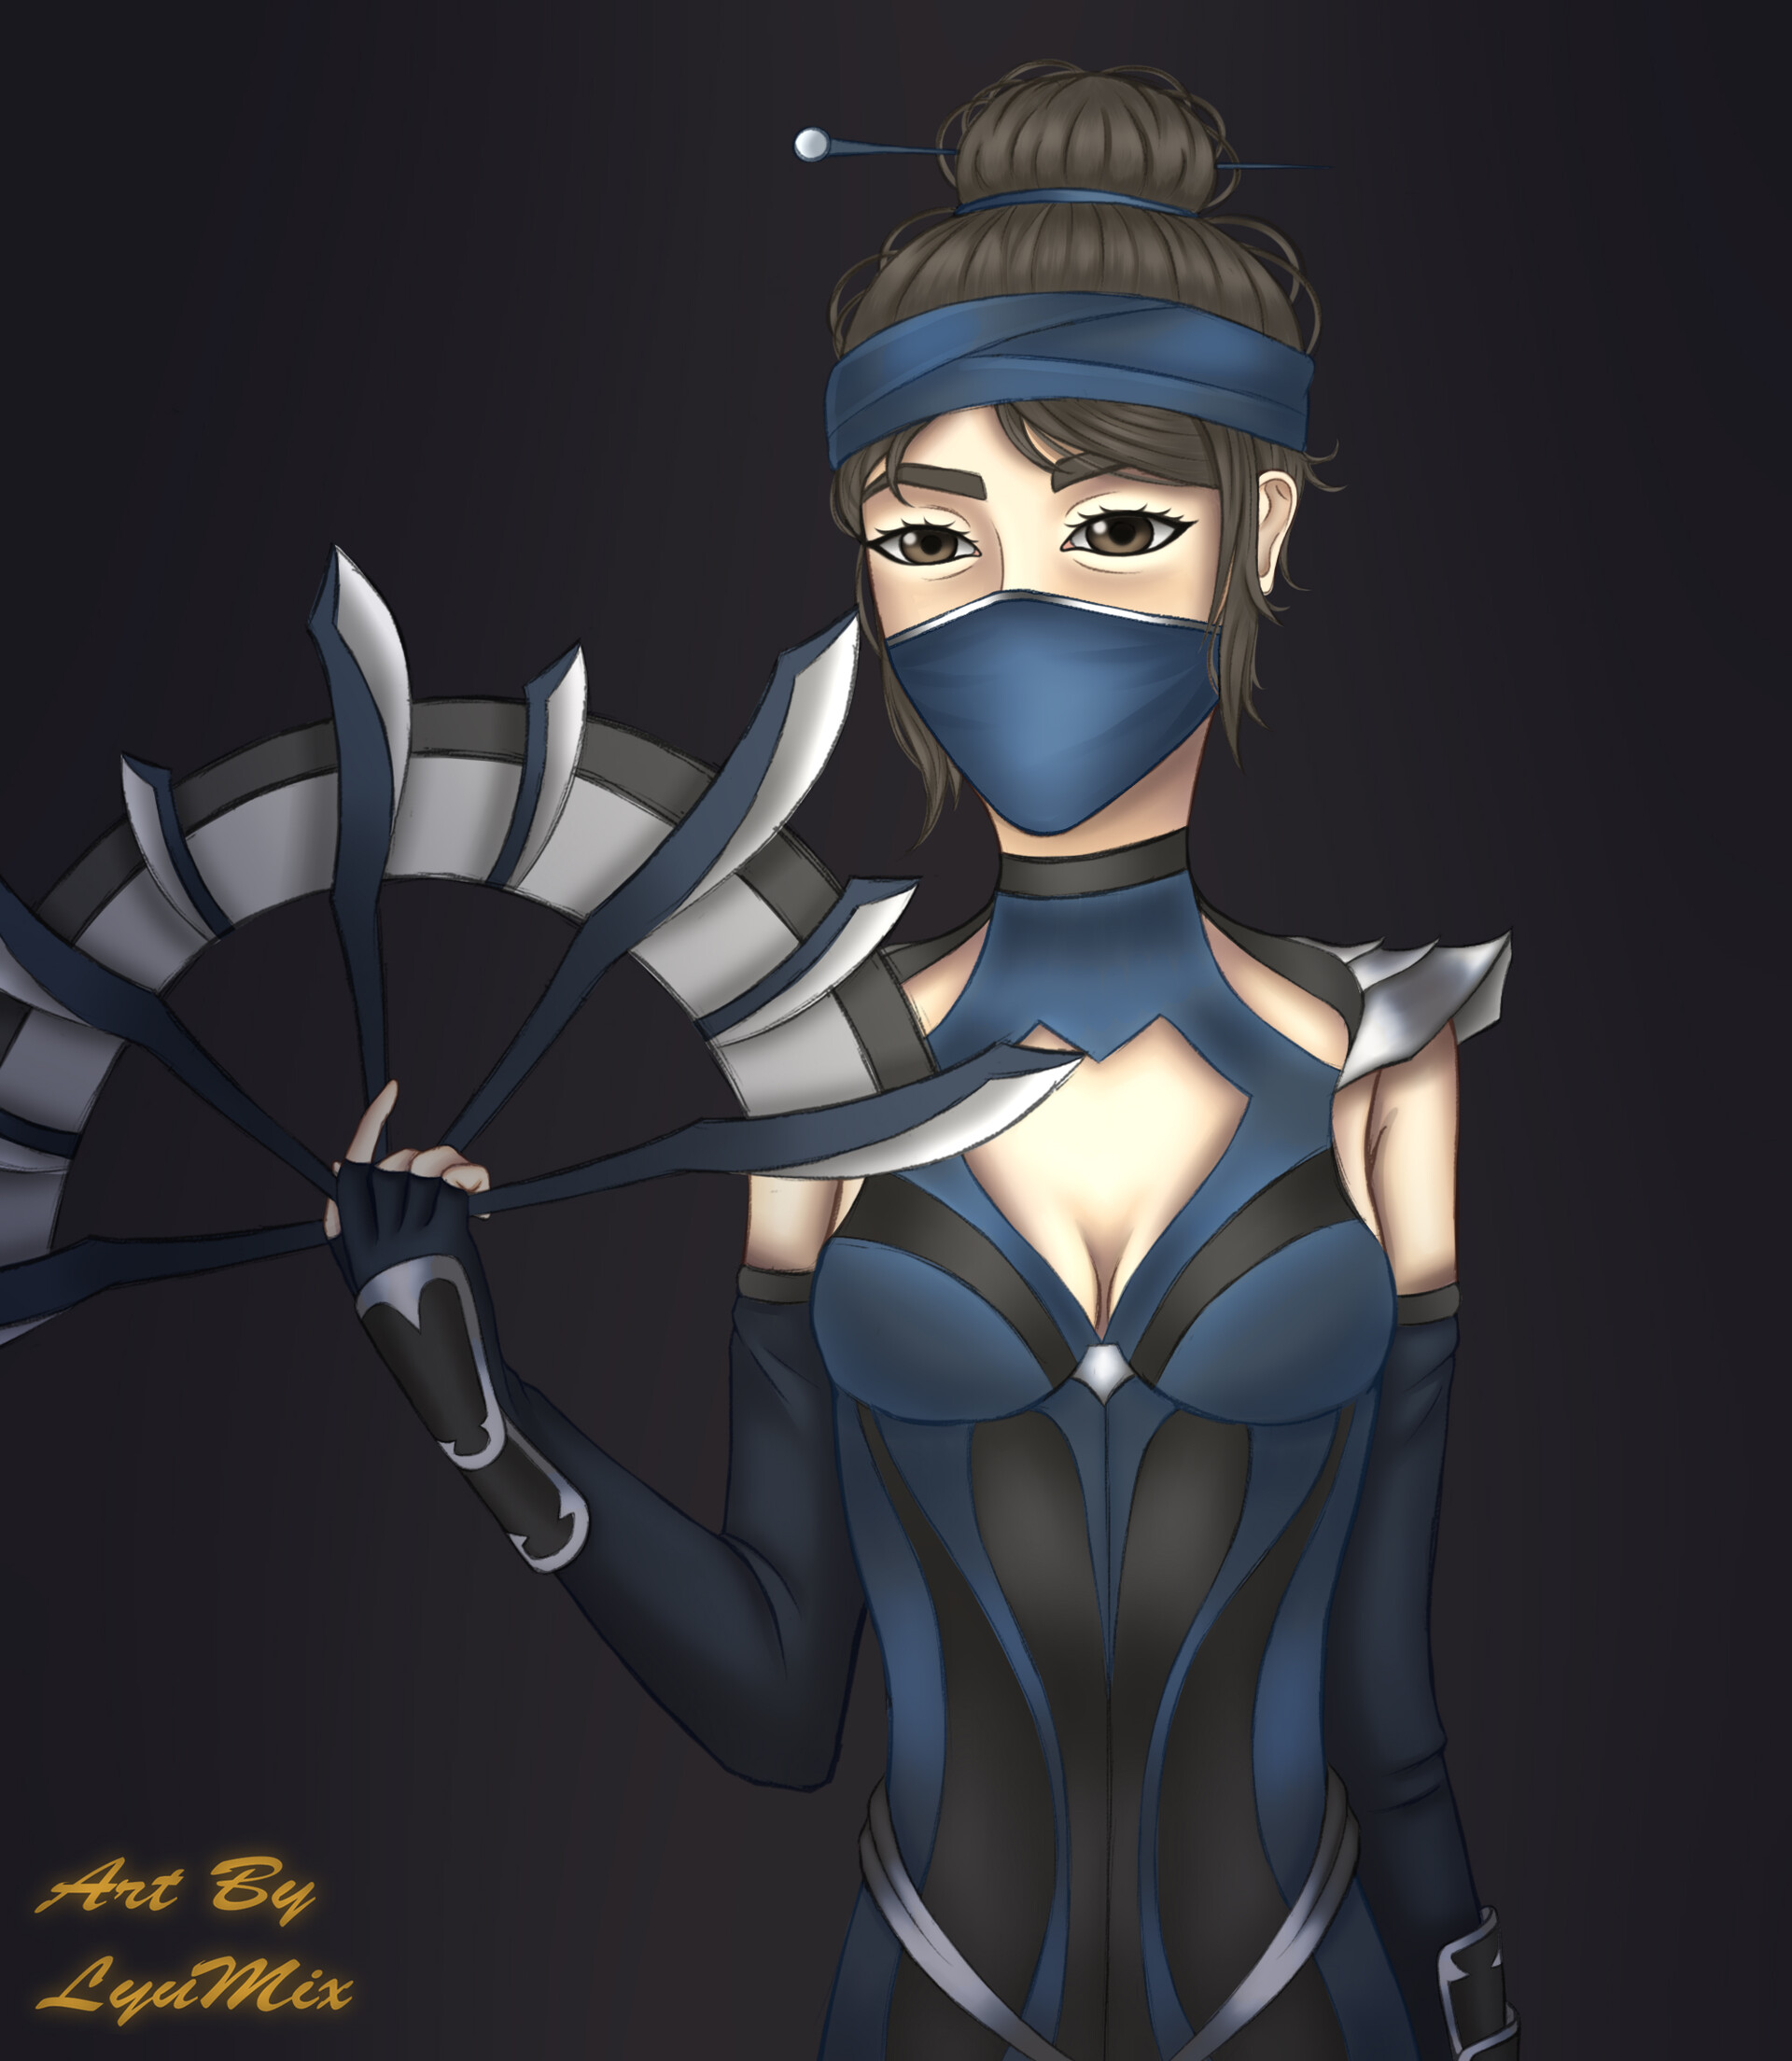 Artstation Mortal Kombat 11 Fanart Kitana With Mask 01 05 19